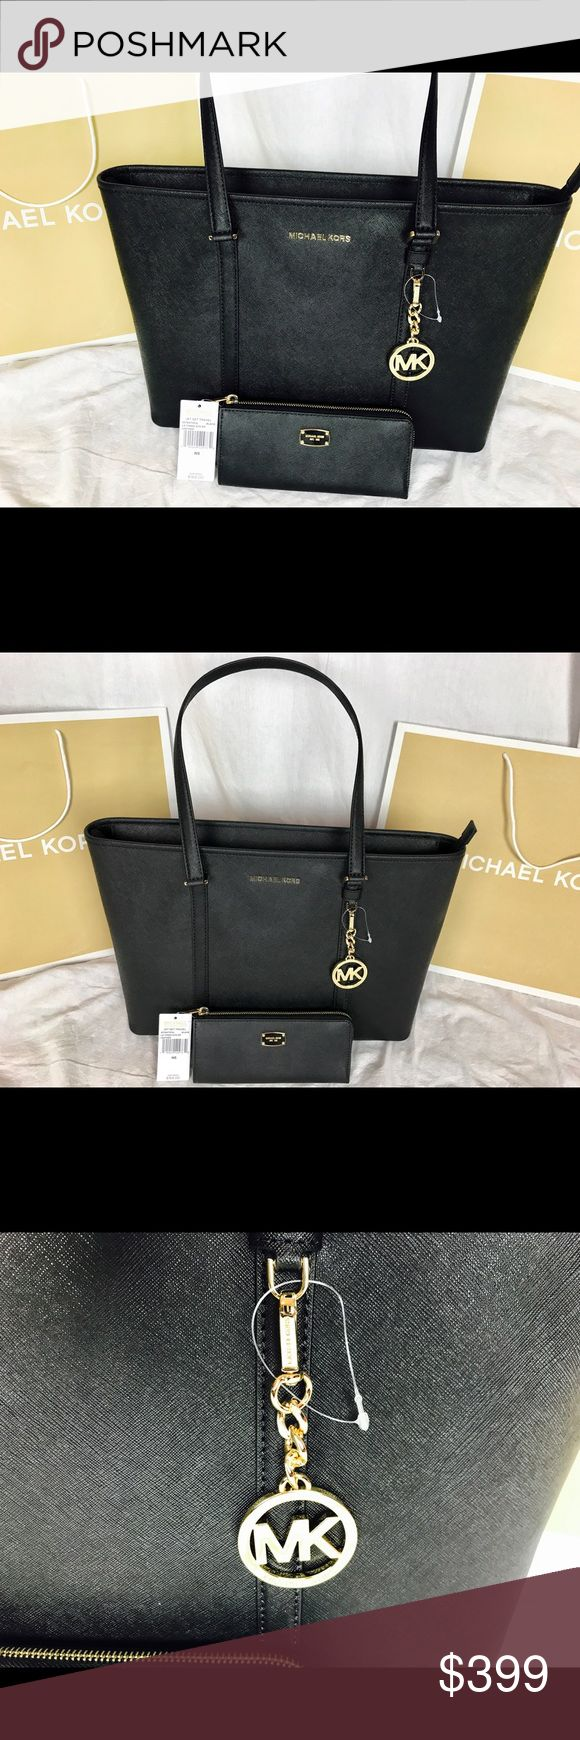 🔥MICHAEL KORS🔥Black w/gold Auth leather wallet 100% AUTHENTIC & BRAND NEW WITH TAGS! I ENCOURAGE YOU TO VERIFY AUTHENTICITY AT MICHAEL KORS IF ANY QUESTIONS! YOU'LL ENJOY THIS BEAUTIFULLY CRAFTED DESIGNER ZIP WALLET THAT WILL TURN EVERY HEAD AND HOLD UP AGAINST IN SUPERIOR QUALITY AND DURABILITY DURING YOUR DAY TO DAY TASKS FOR MANY YEARS!! 😊MSRP: $168 MICHAEL Michael Kors Bags Wallets